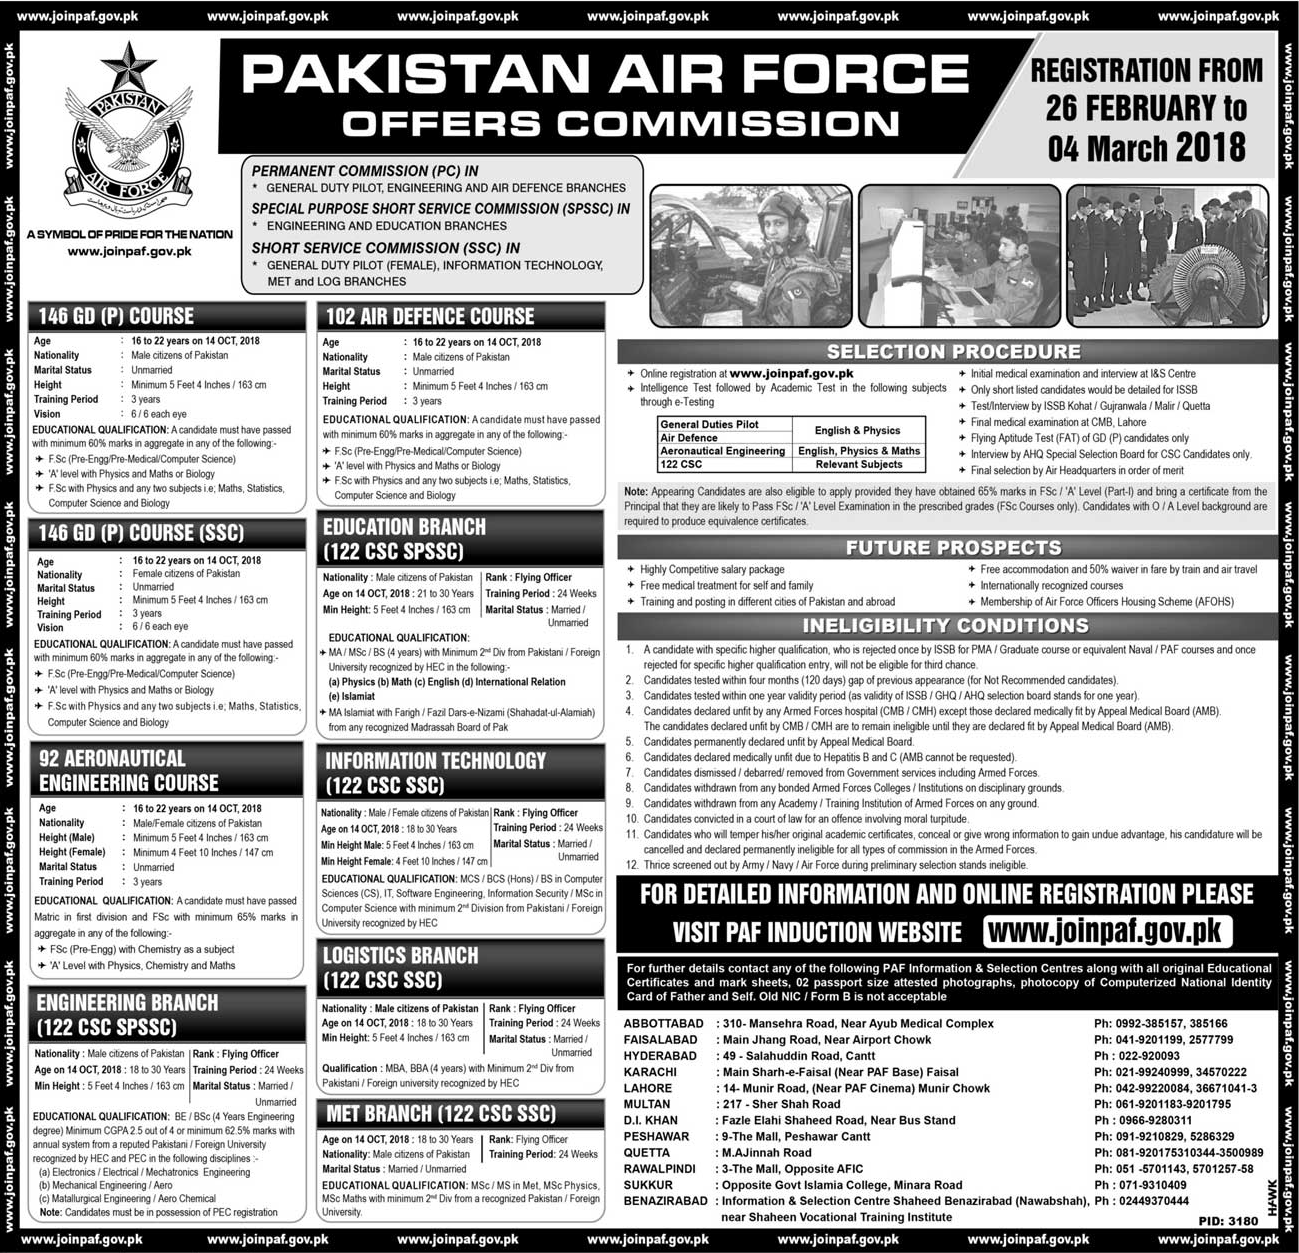 Recruitment of Officers in PAF Through Service Commission